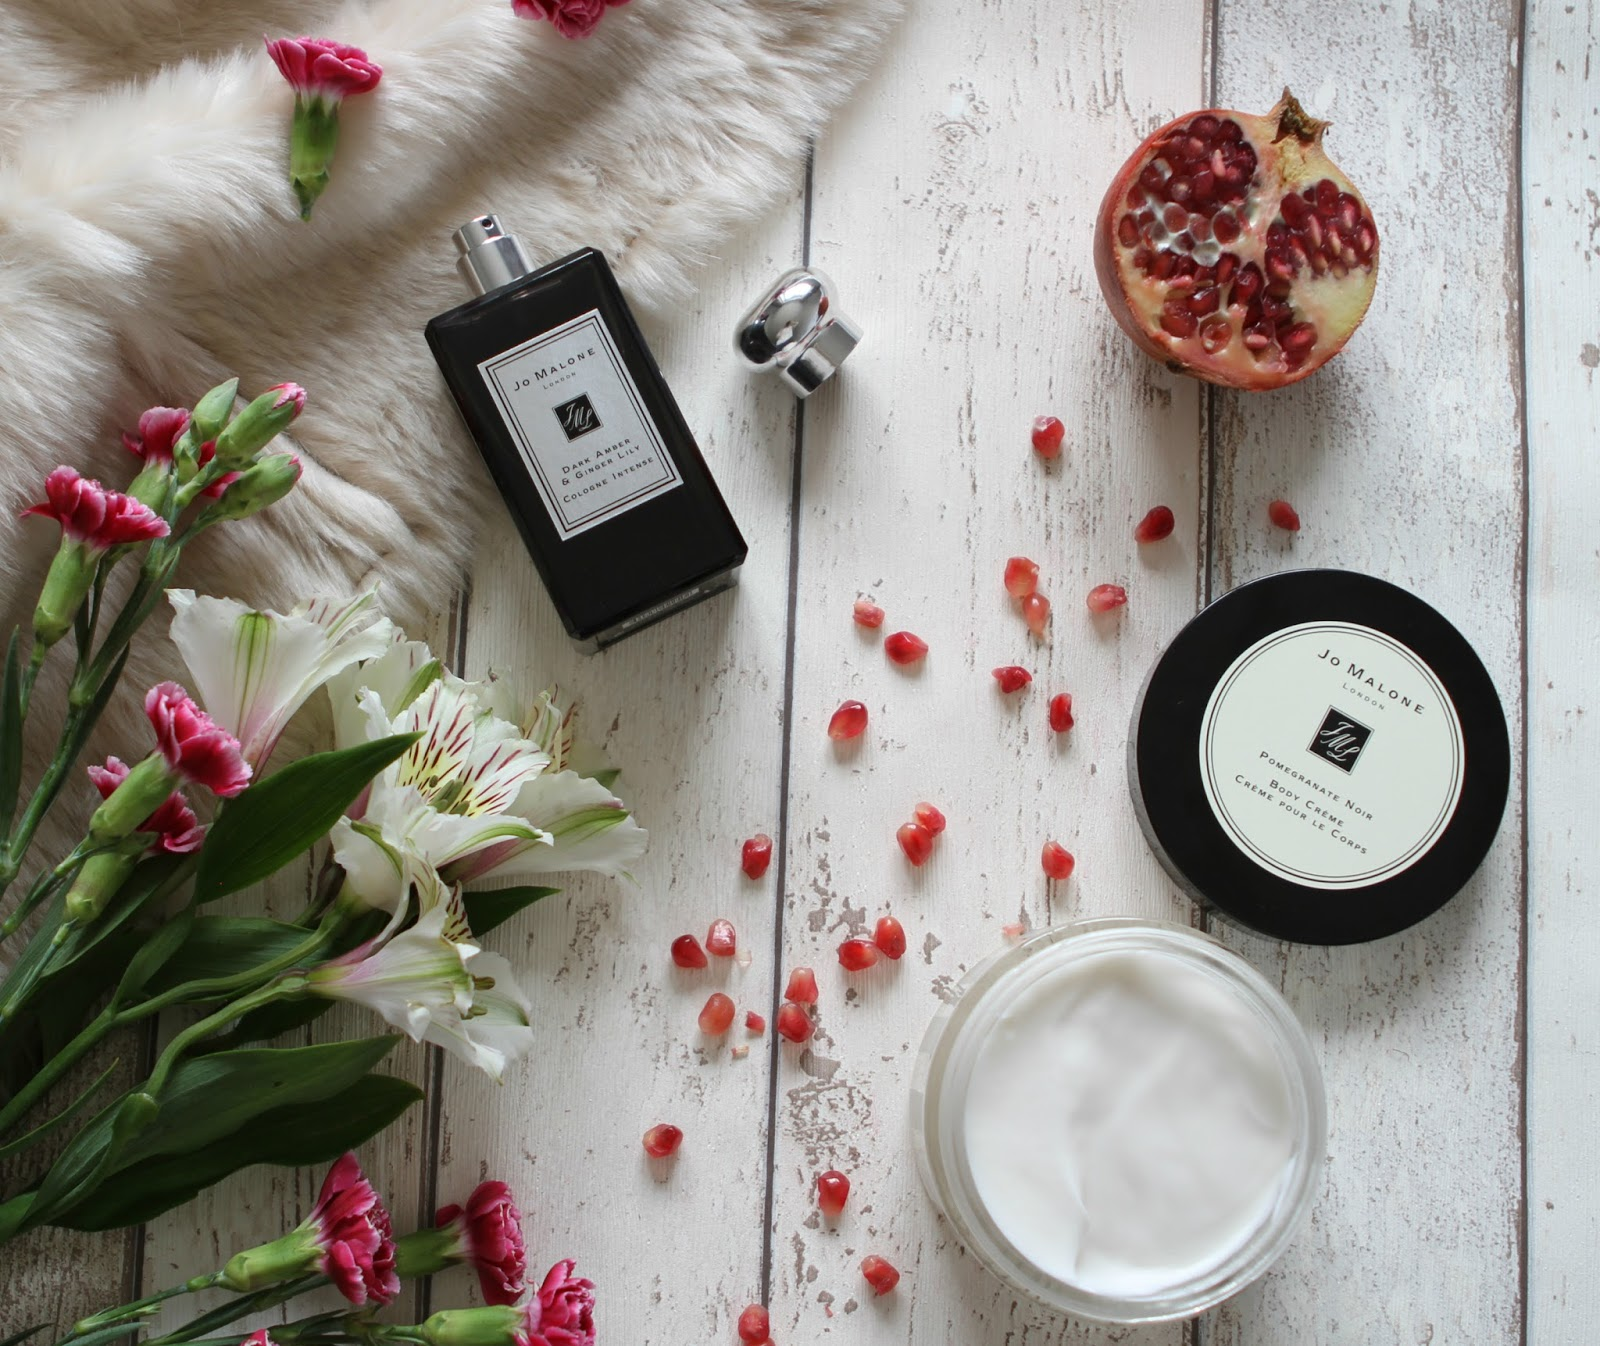 Jo Malone Fragrance Combining